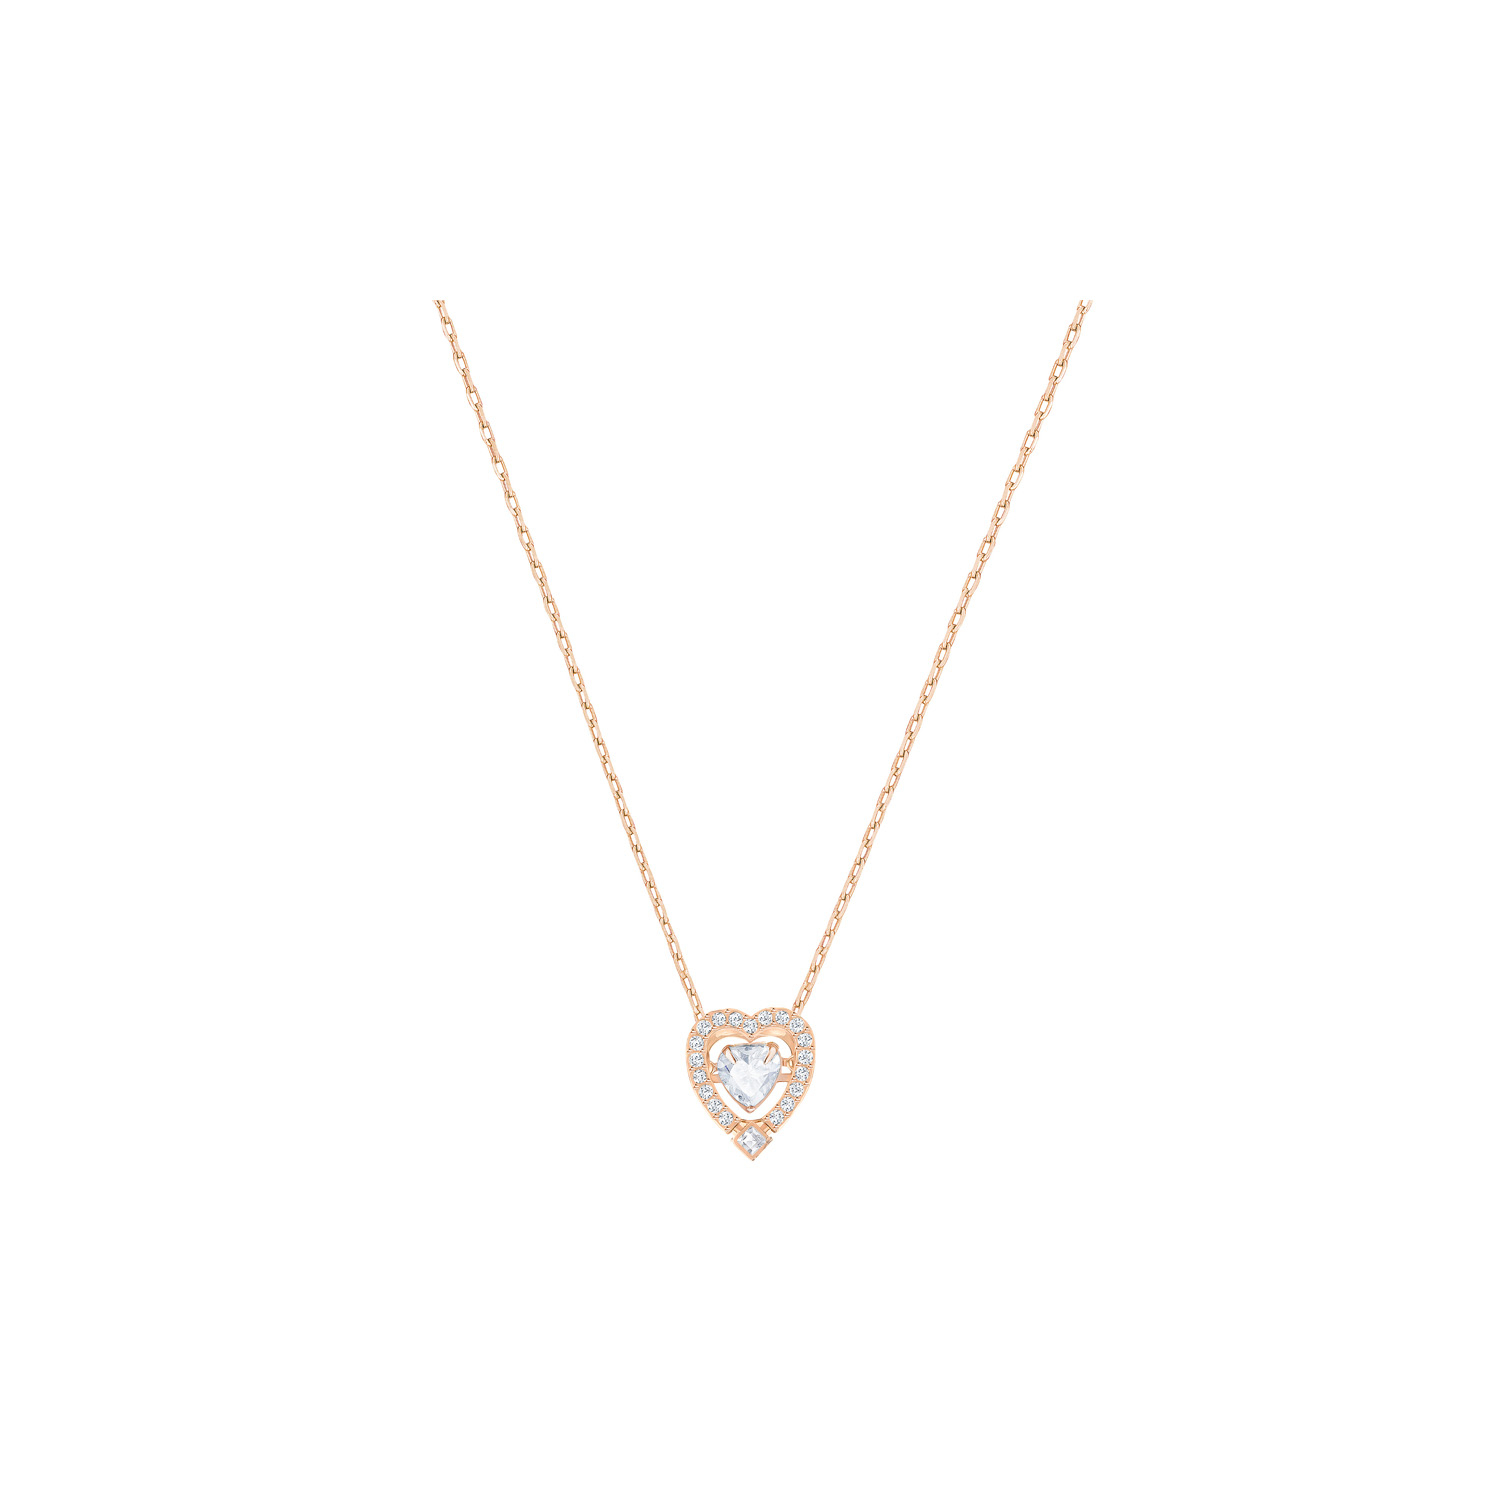 Swarovski Sparkling Dancing Heart Shapped Stone Necklace Rose Gold Intended For Current Sparkling Stones Pendant Necklaces (View 5 of 25)